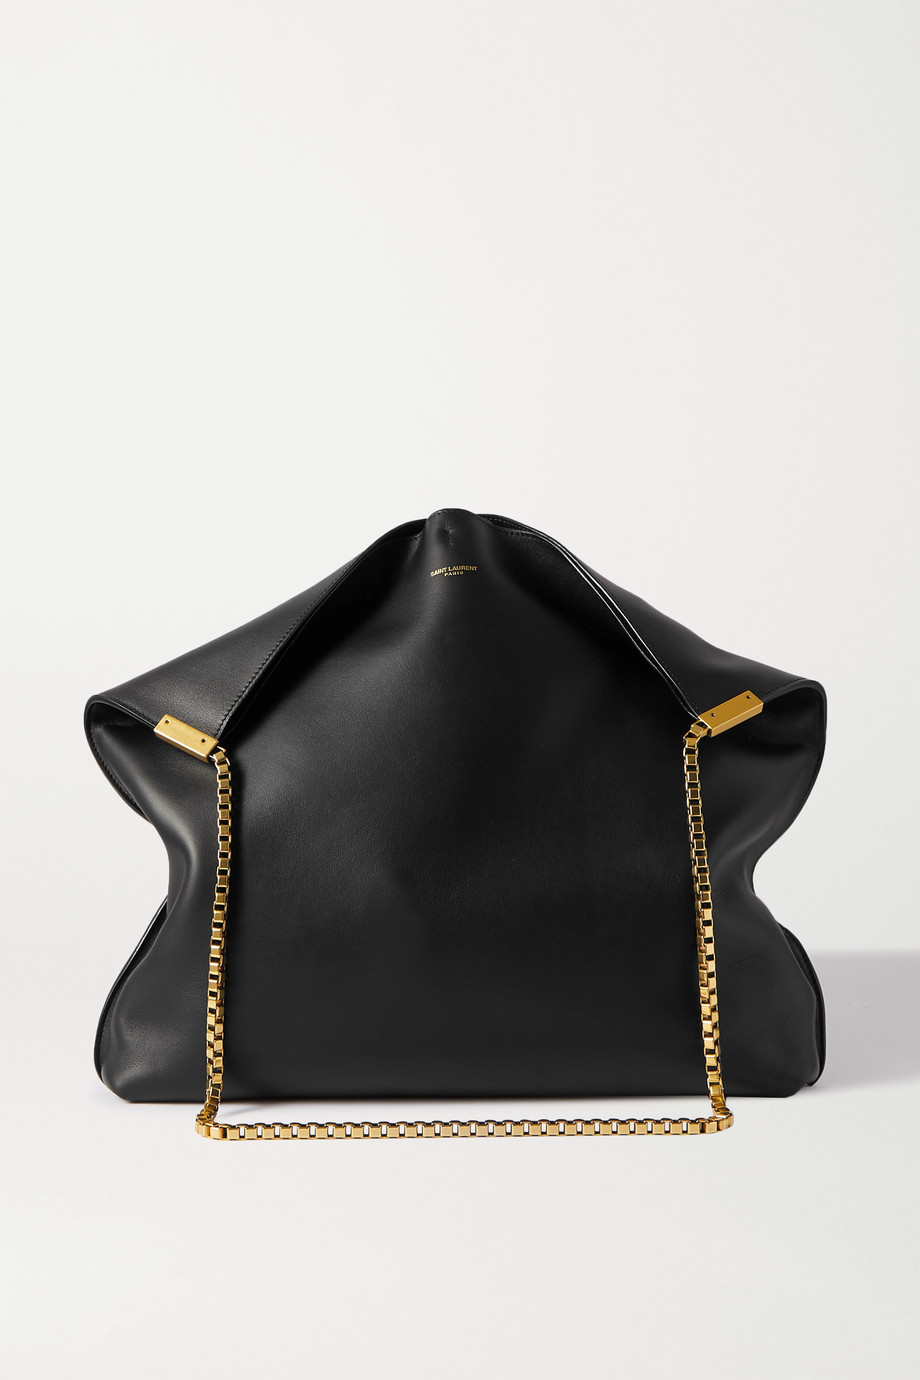 SAINT LAURENT Suzanne medium leather shoulder bag